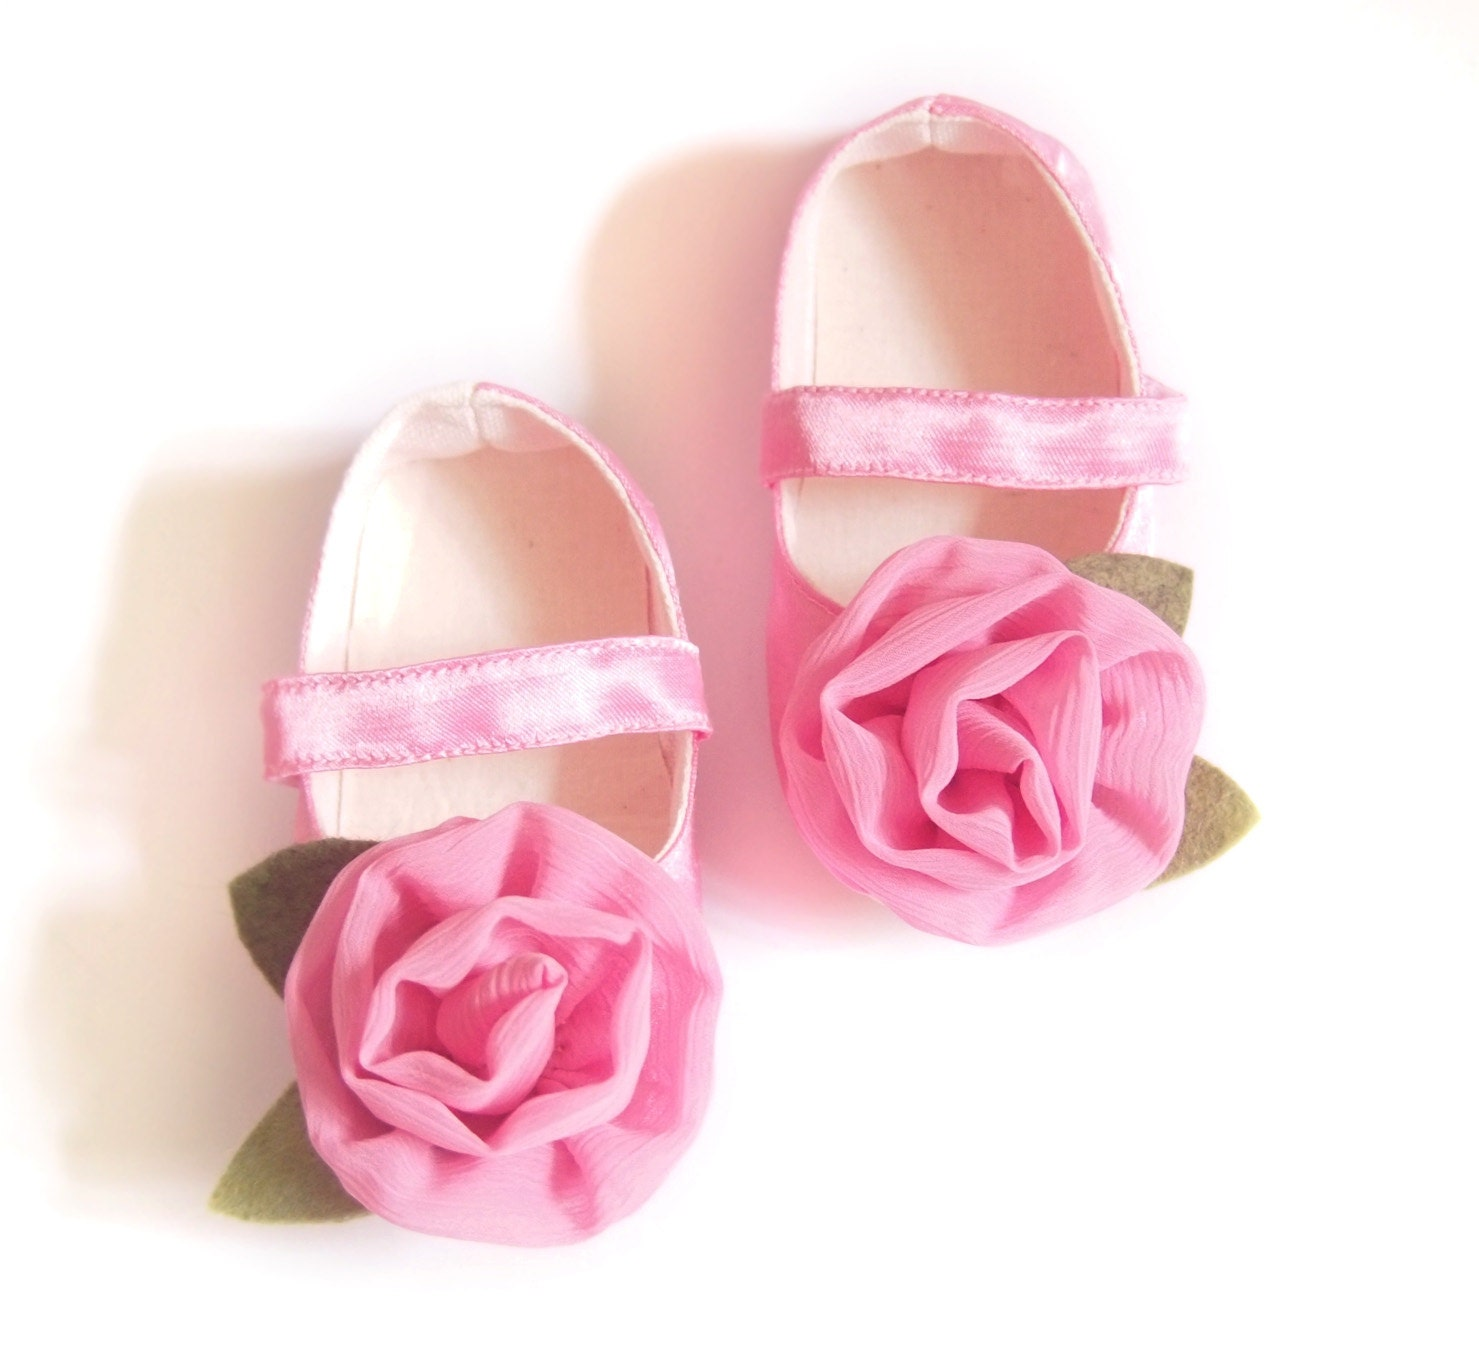 Baby Shoes, Toddler Shoes, Baby Girl Shoes, Newborn Shoes, Pink, Spring, Baby Shower Gift, New Baby, Baby Girl Clothes - littleserah